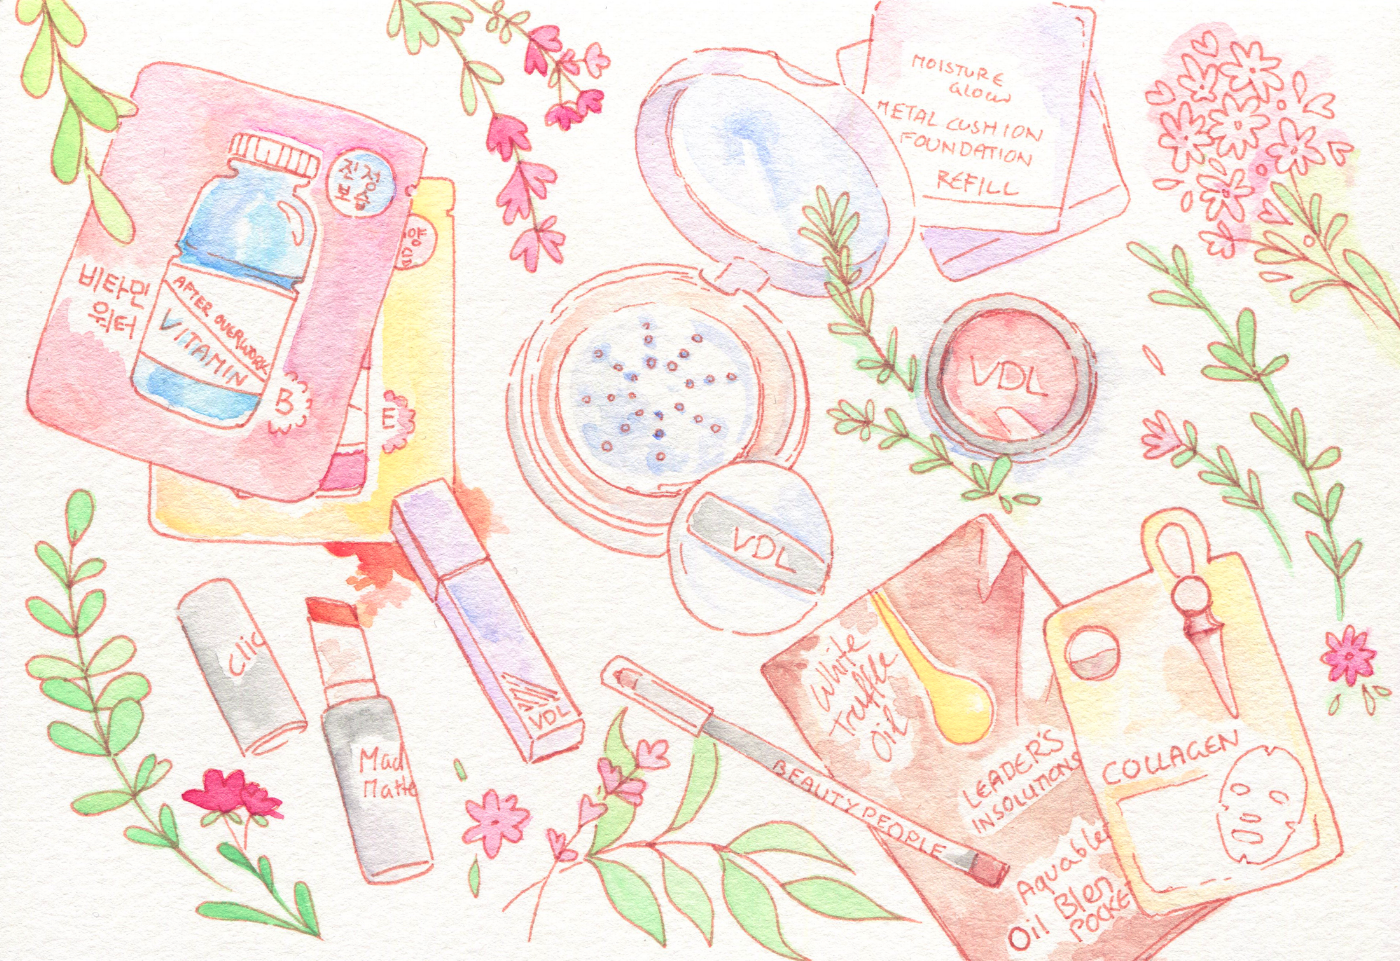 Seoul Shopping Trip: My Korean beauty and makeup haul illustration and a lightning round of reviews! VDL metal cushion foundations, Clio Mad Matte lipsticks and lots of sheetmasks.